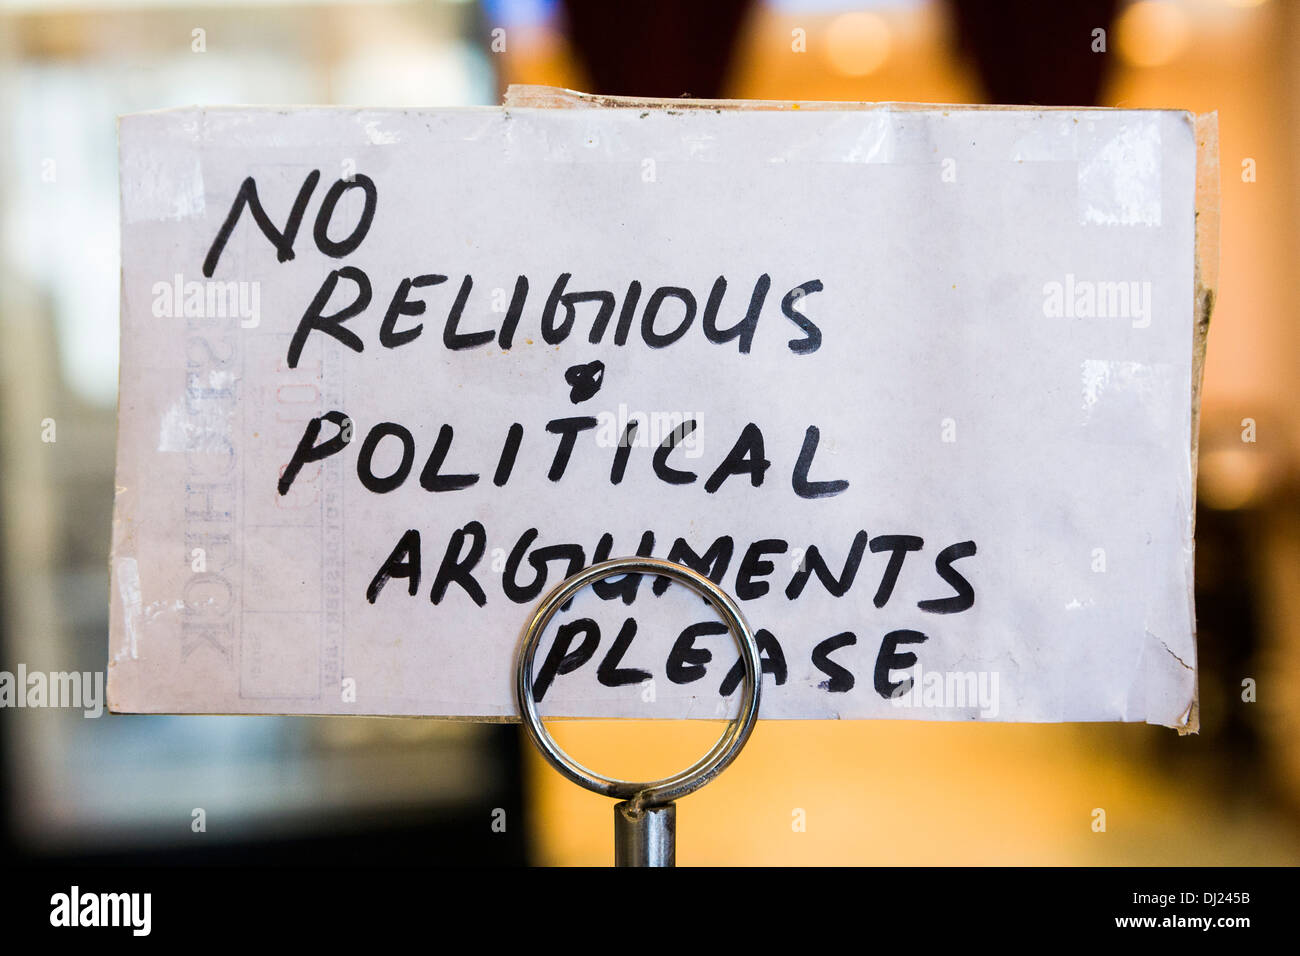 Handwritten sign that says 'No religious & political arguments please.' - Stock Image